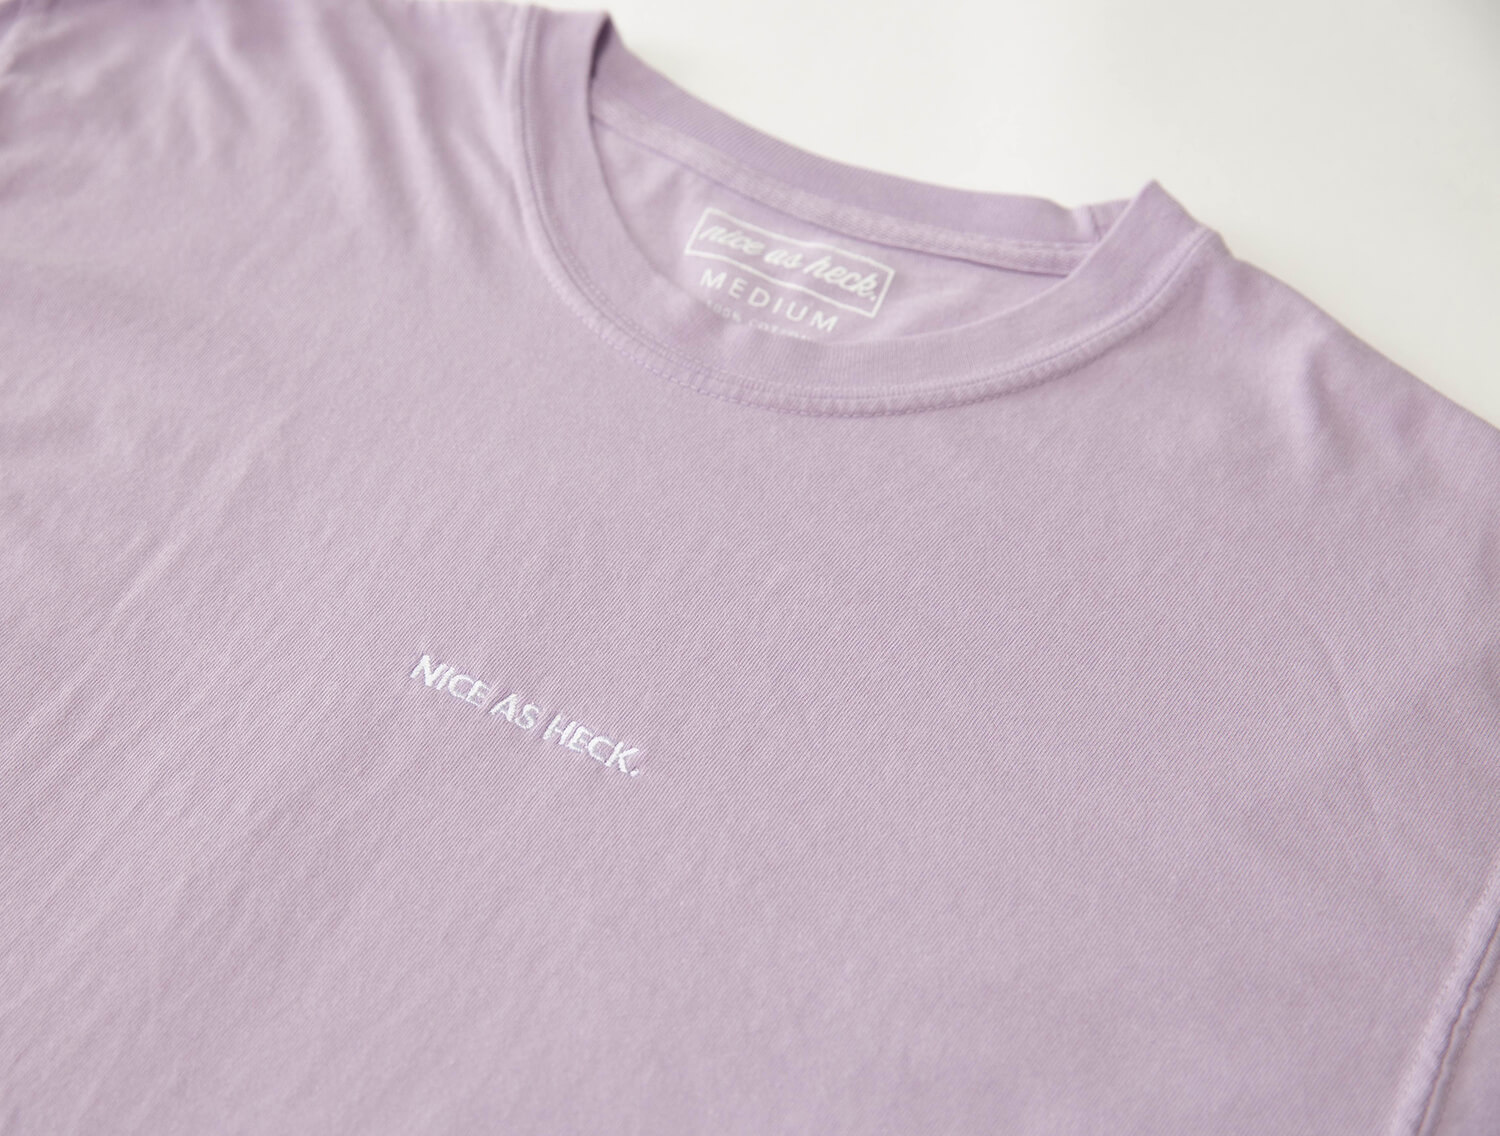 loves me tee close up